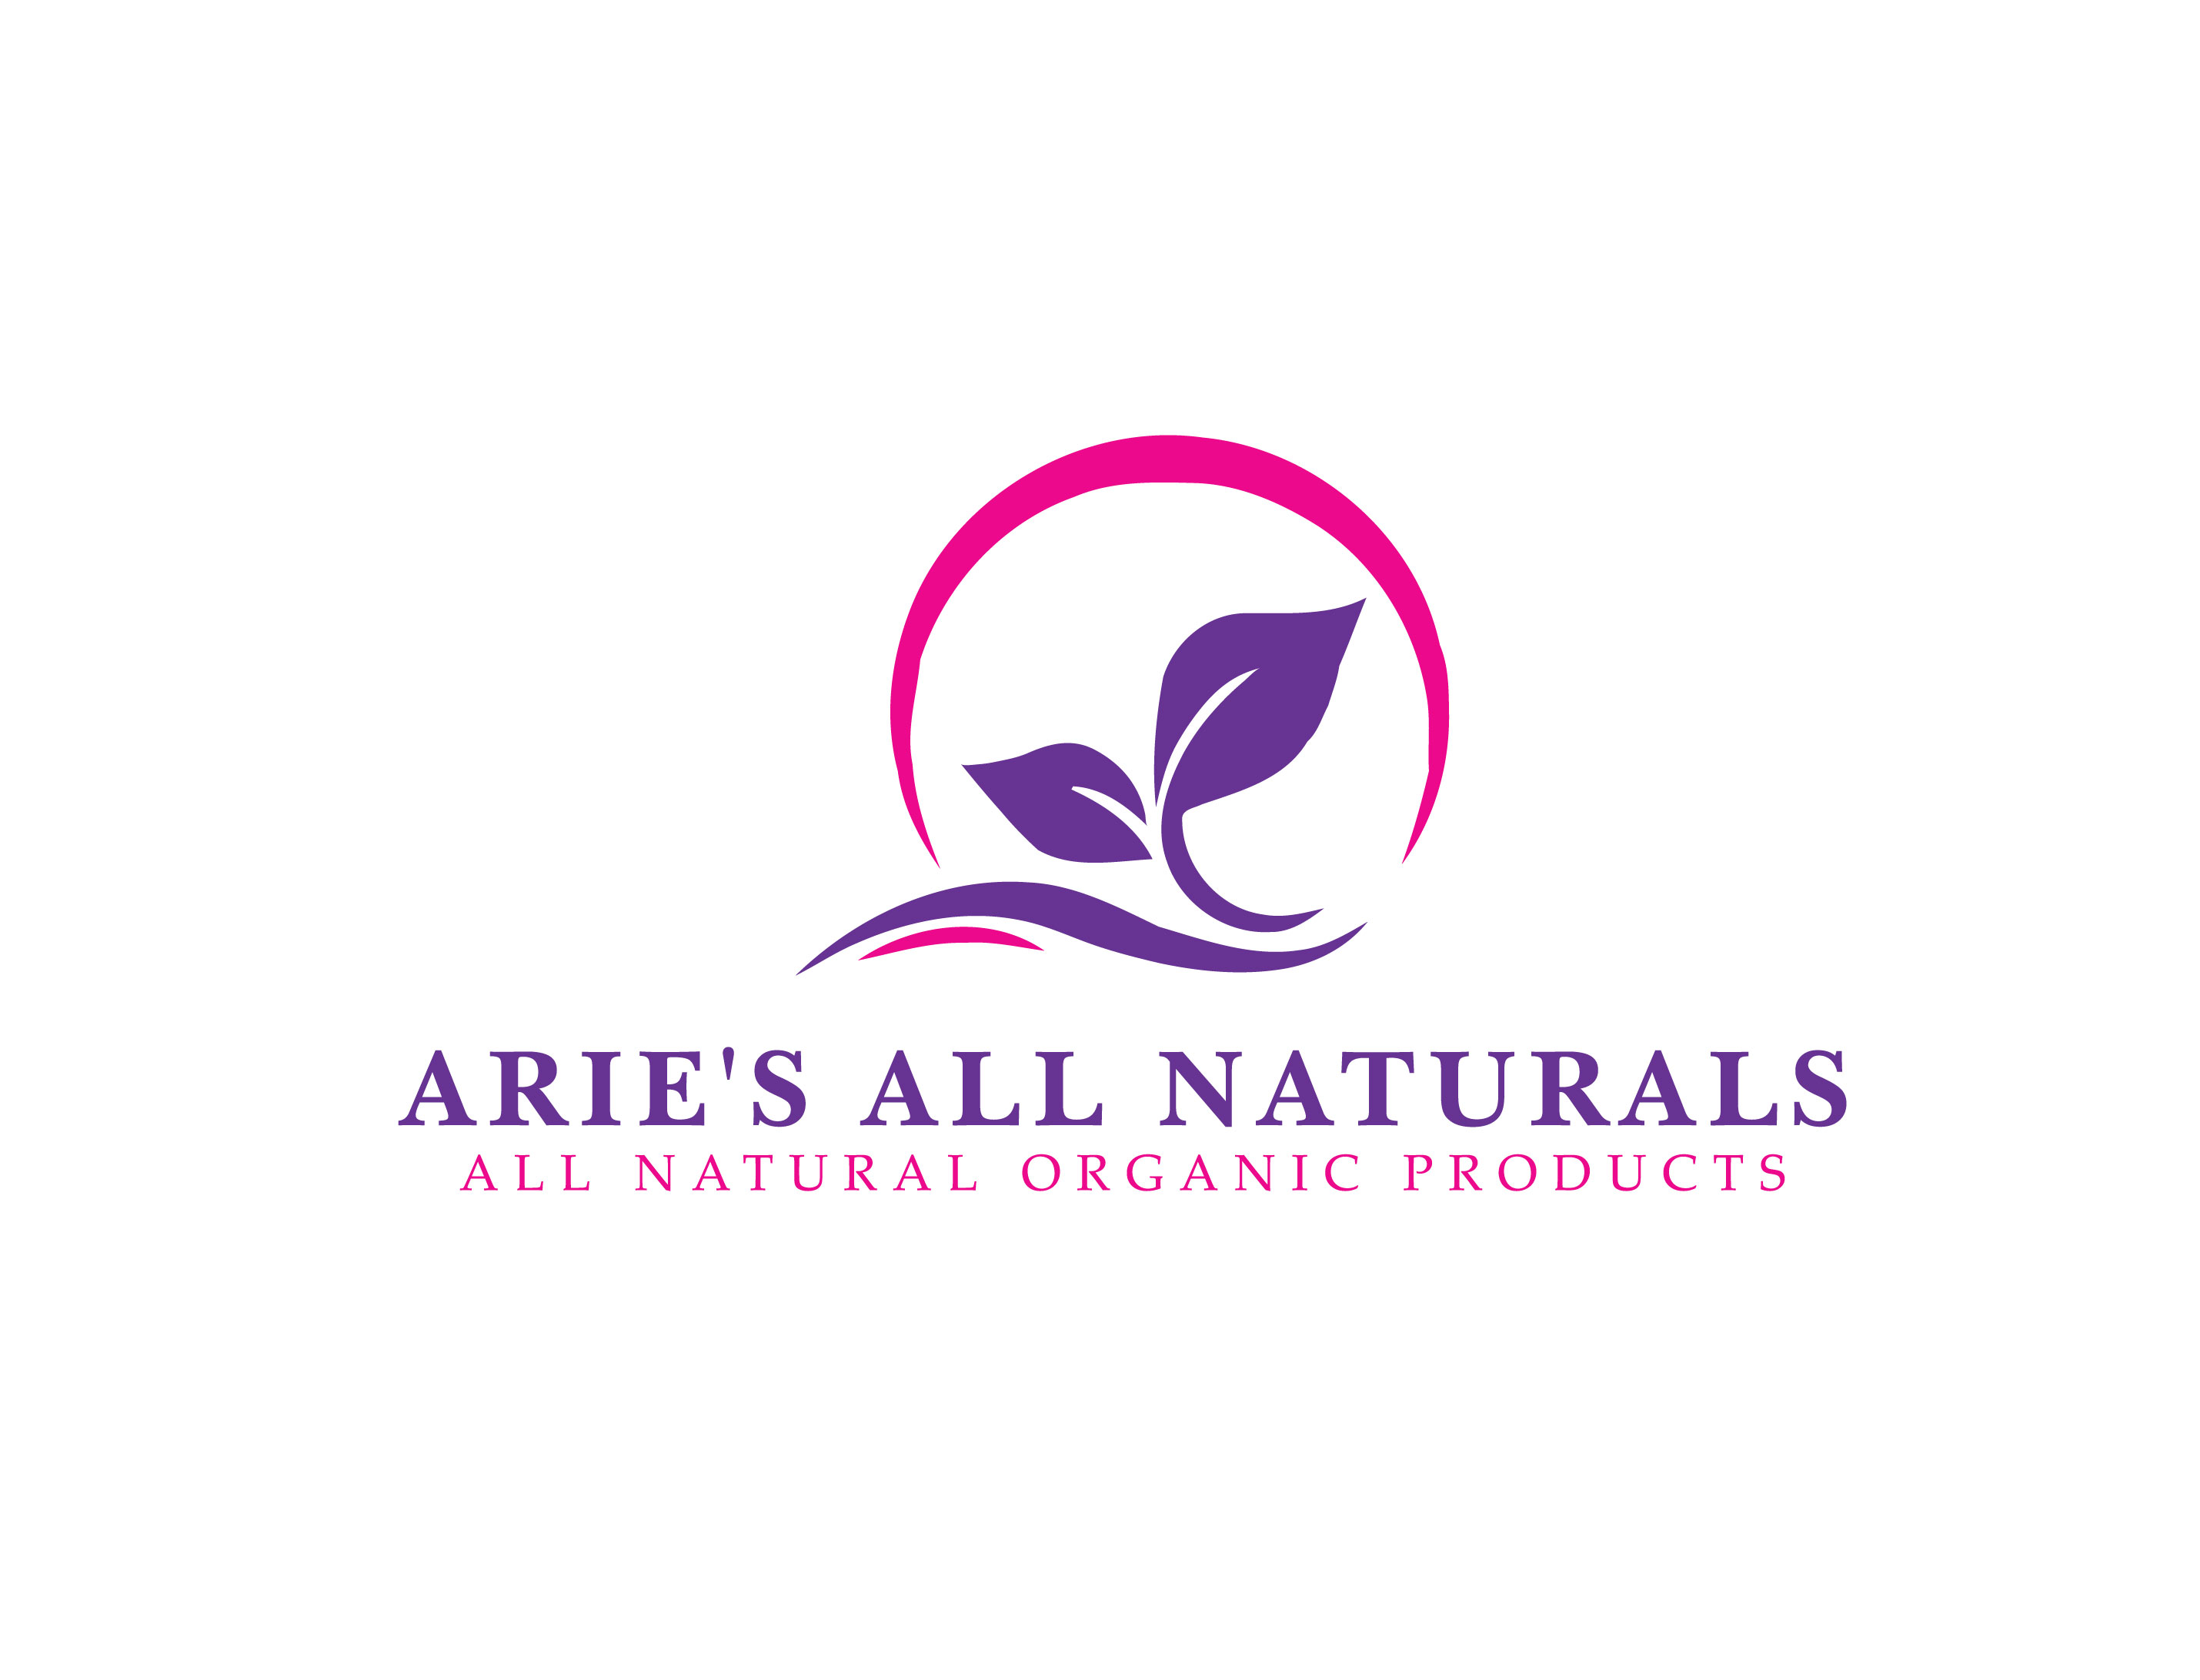 Arie's All Naturals